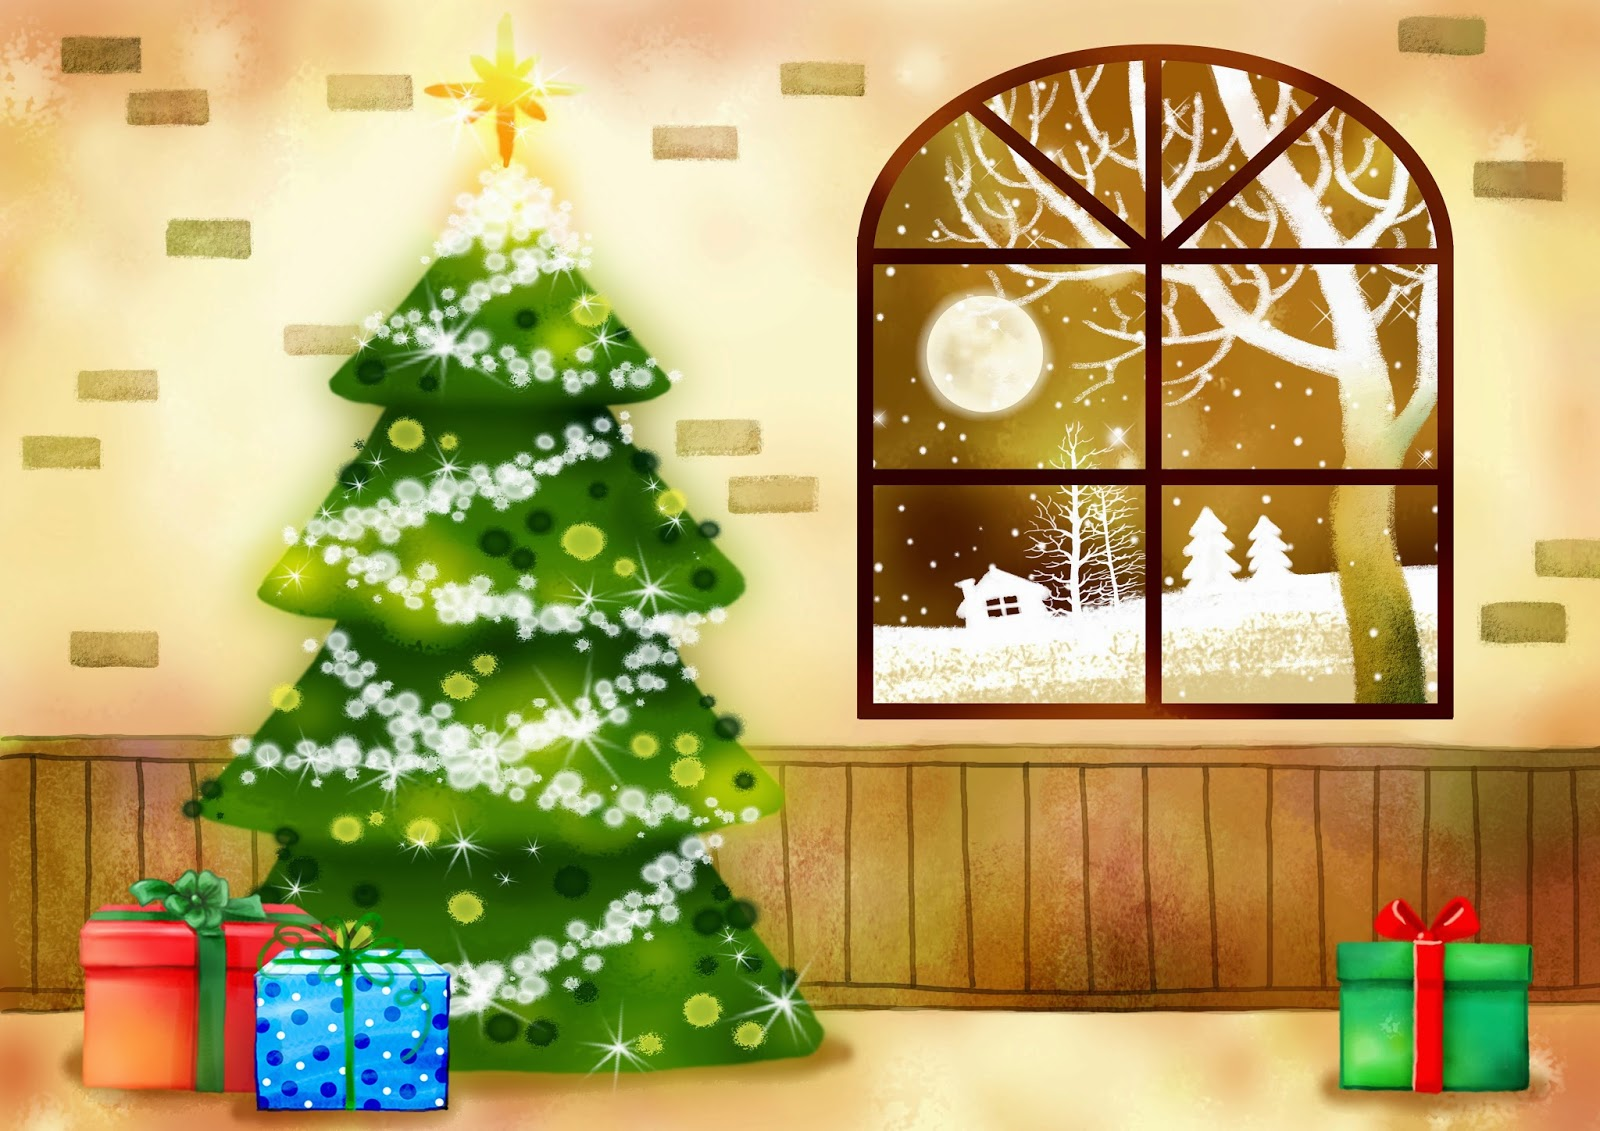 Christmas-decorated-home-snowfall-view-through-window-cartoon-image-4961x3508-6.jpg